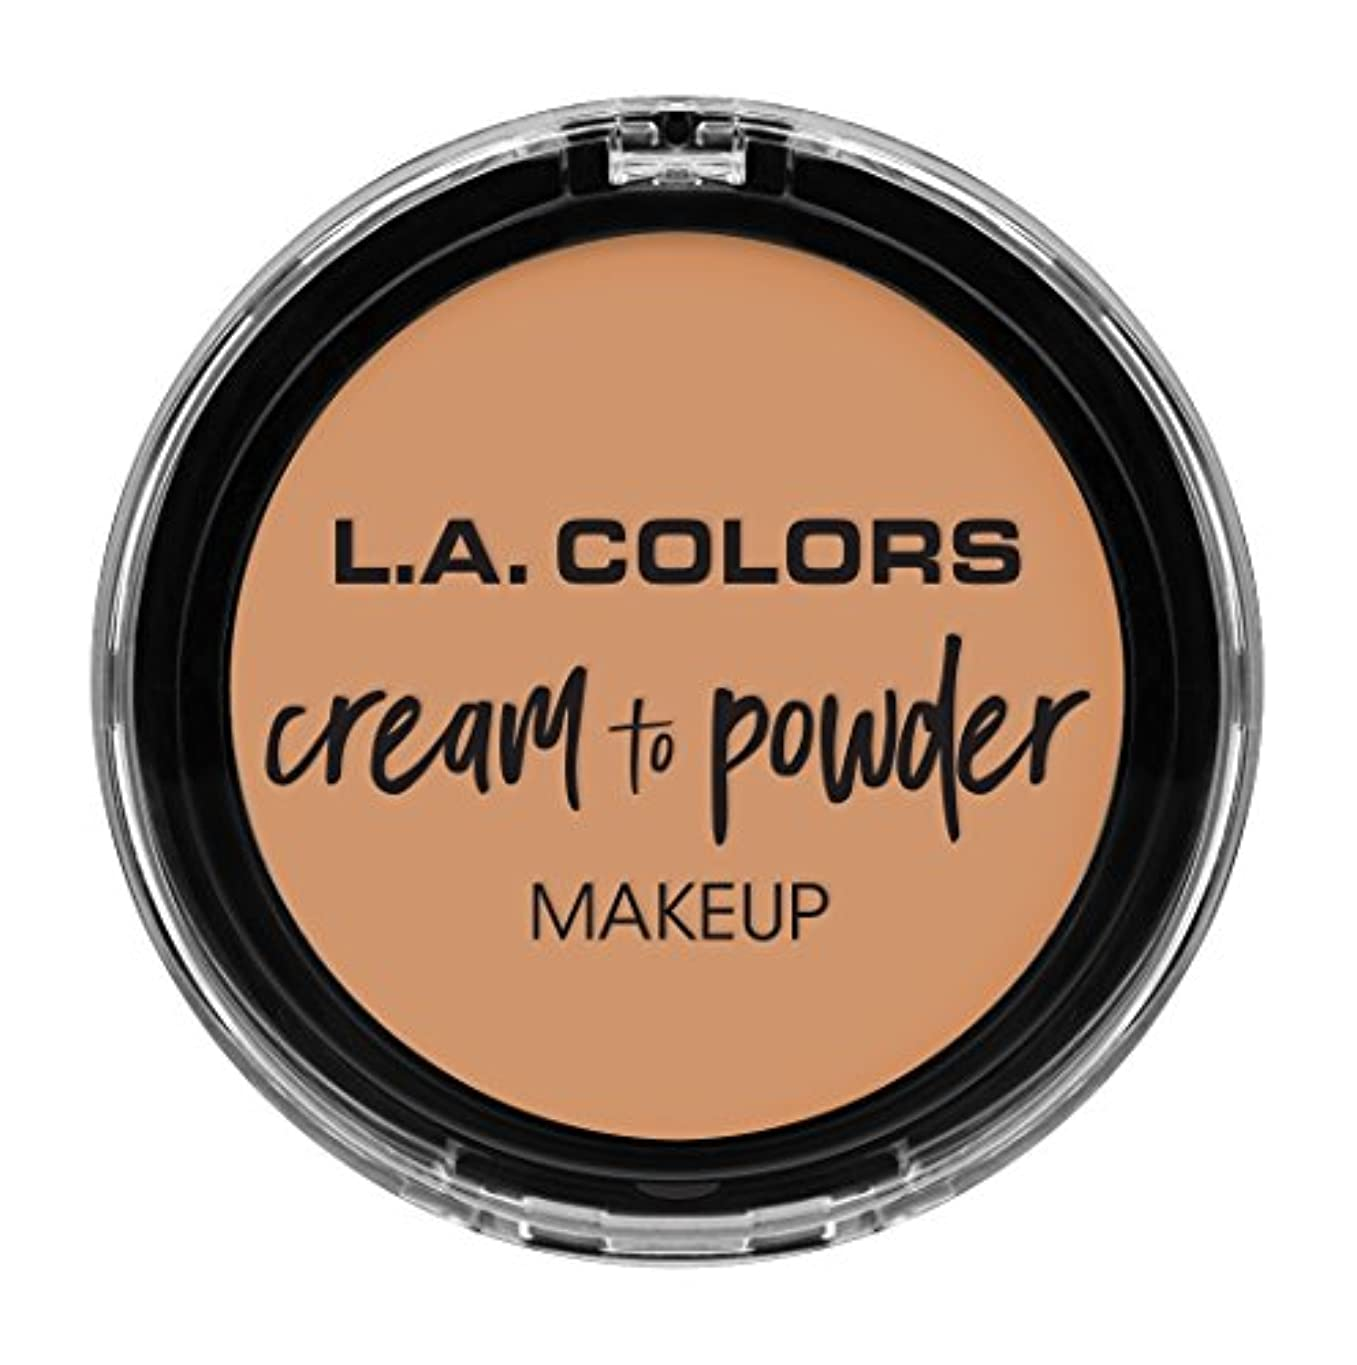 L.A. COLORS Cream To Powder Foundation - Natural (並行輸入品)